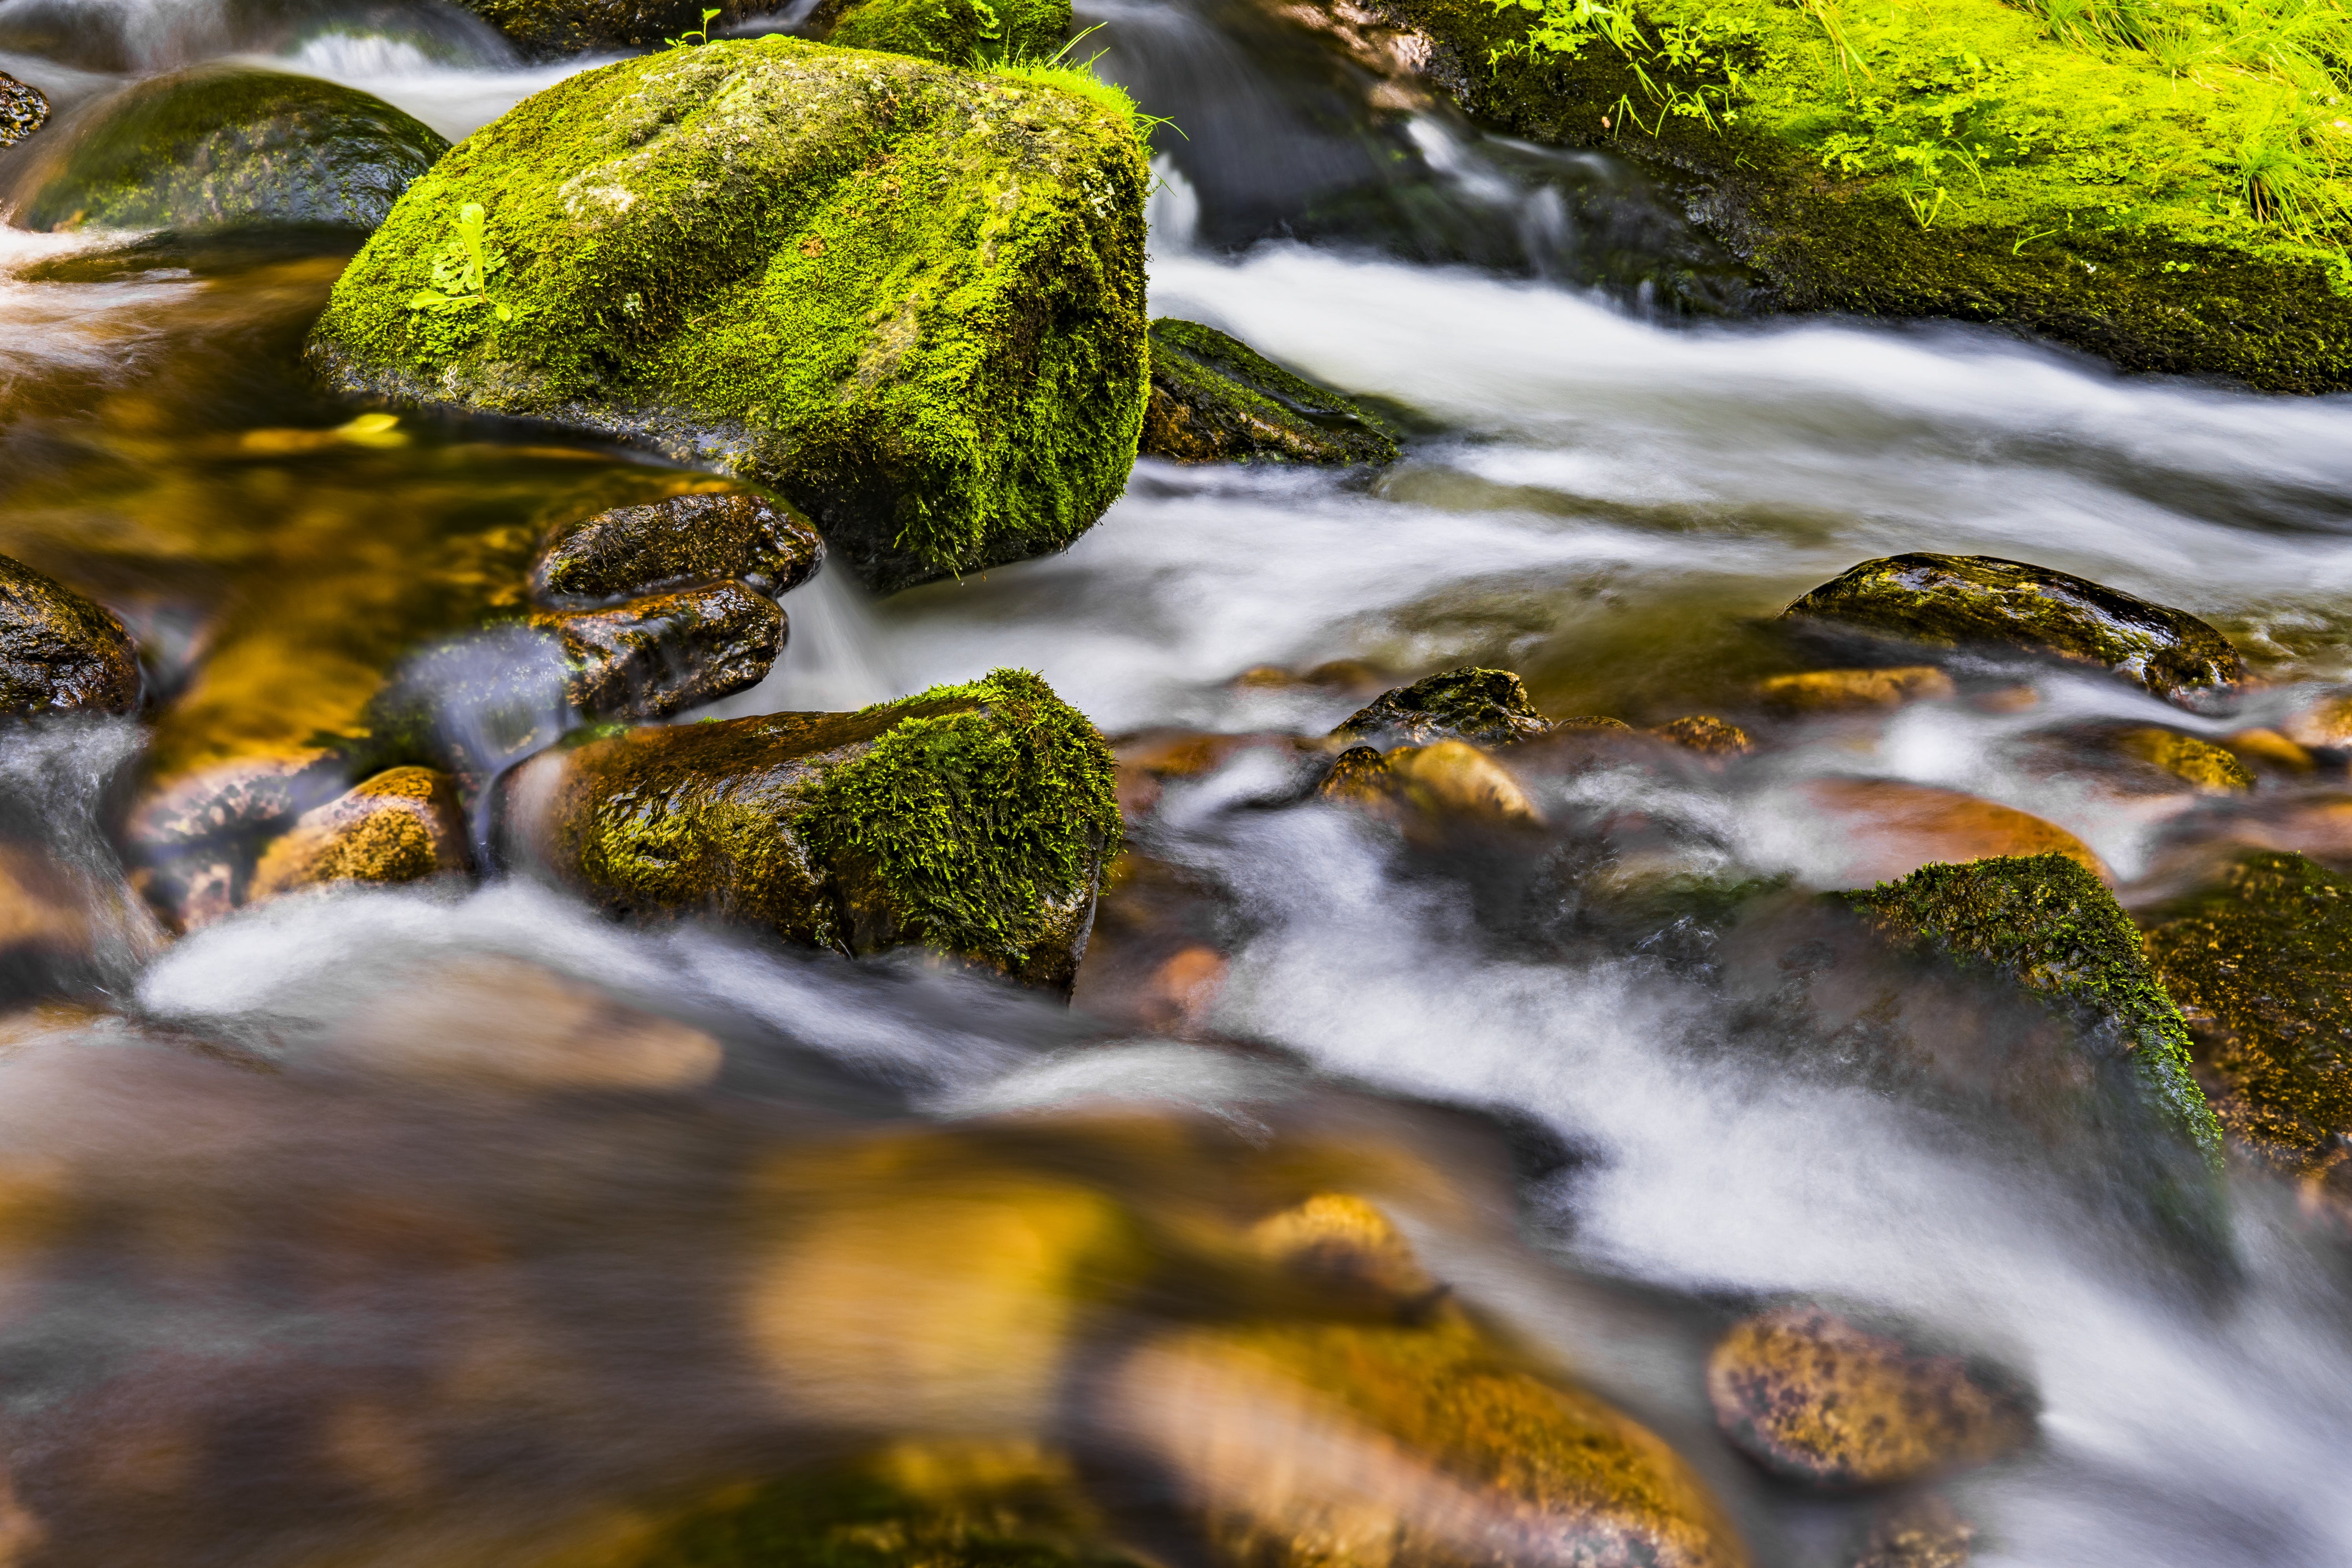 Closeup Photo Body of Water and Green Stone